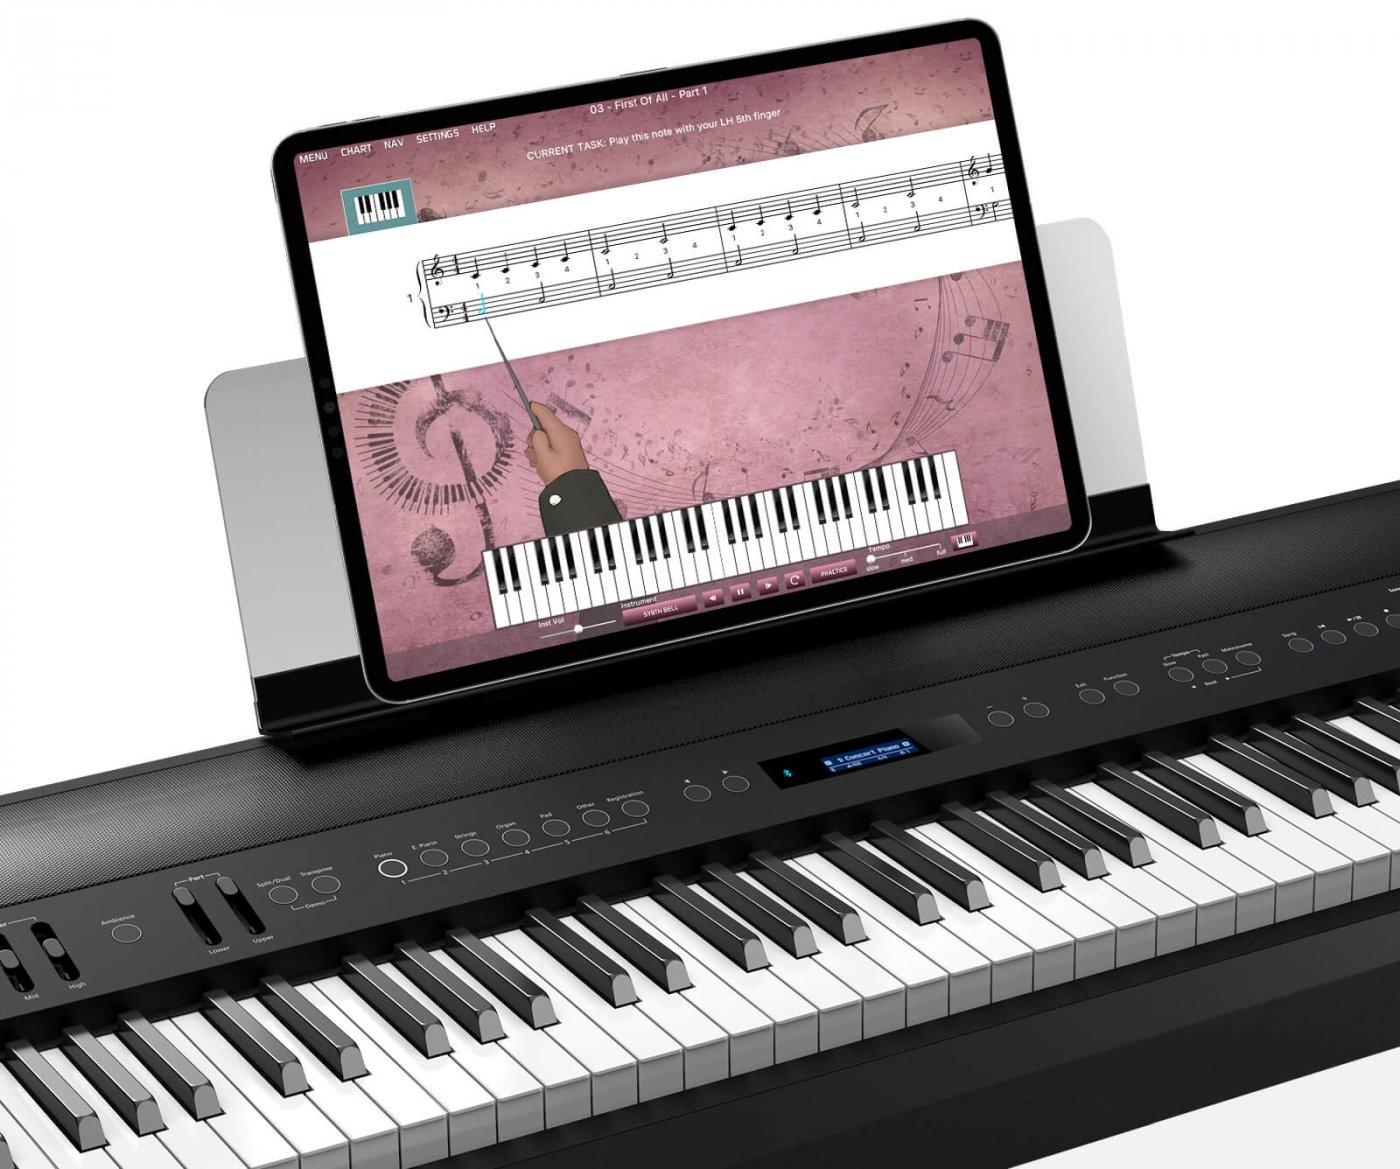 adults piano lessons app on ipad with MIDI piano keyboard